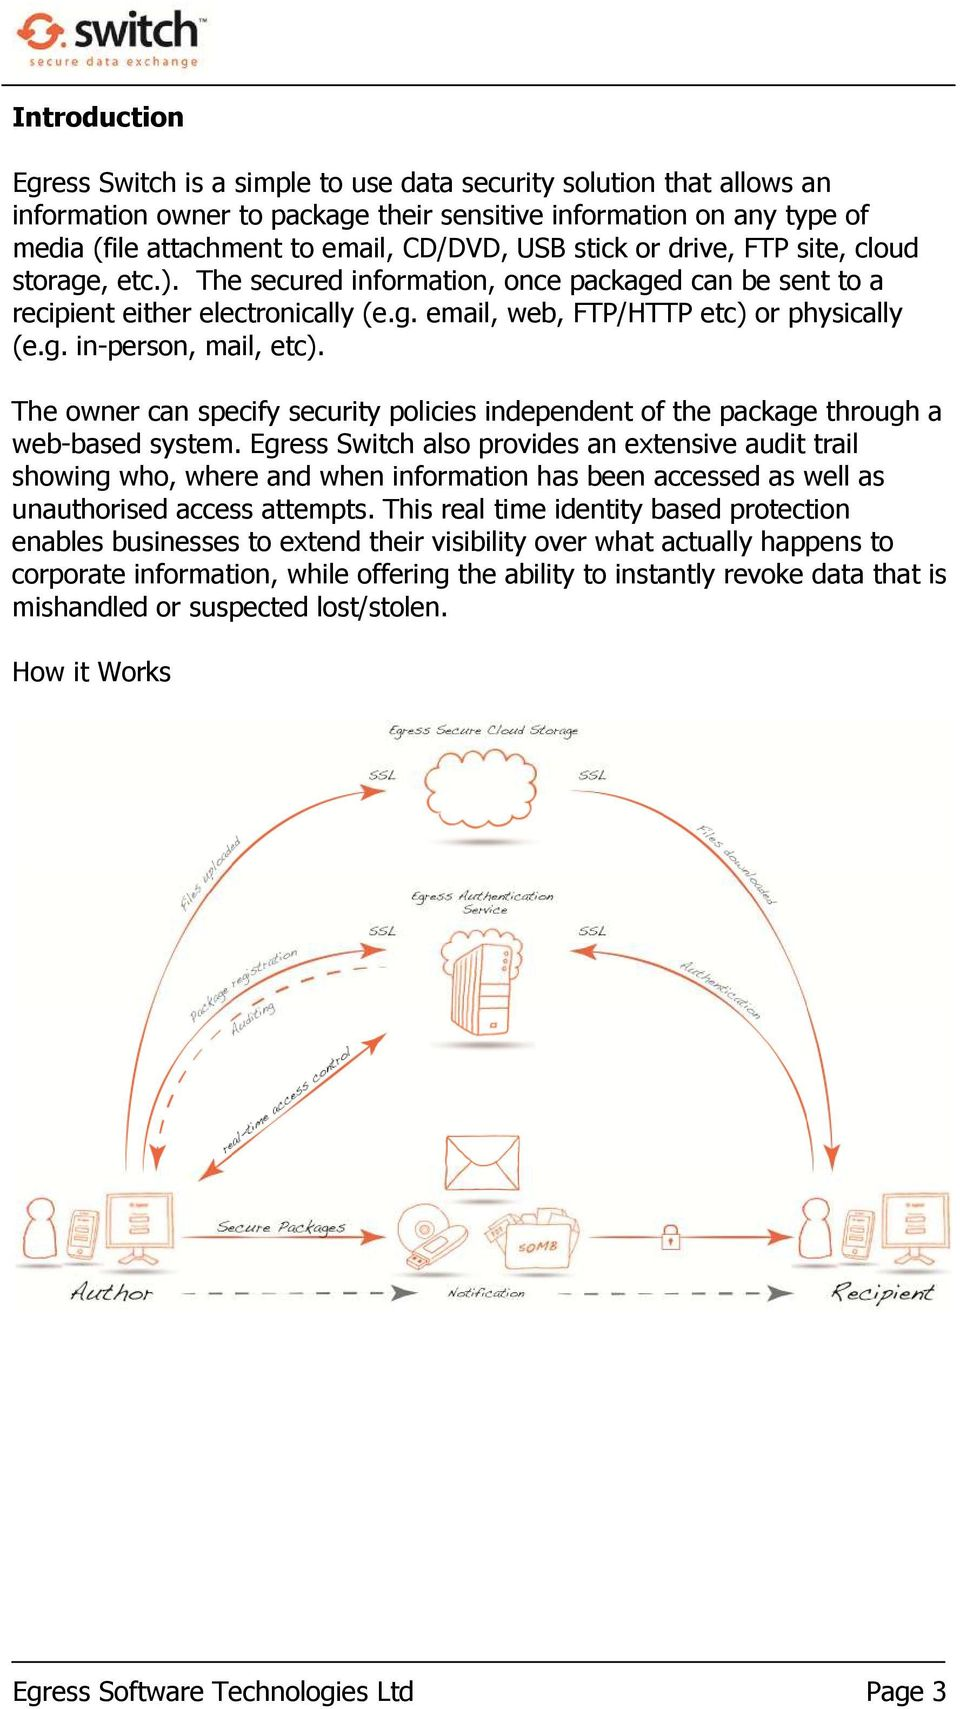 The owner can specify security policies independent of the package through a web-based system.